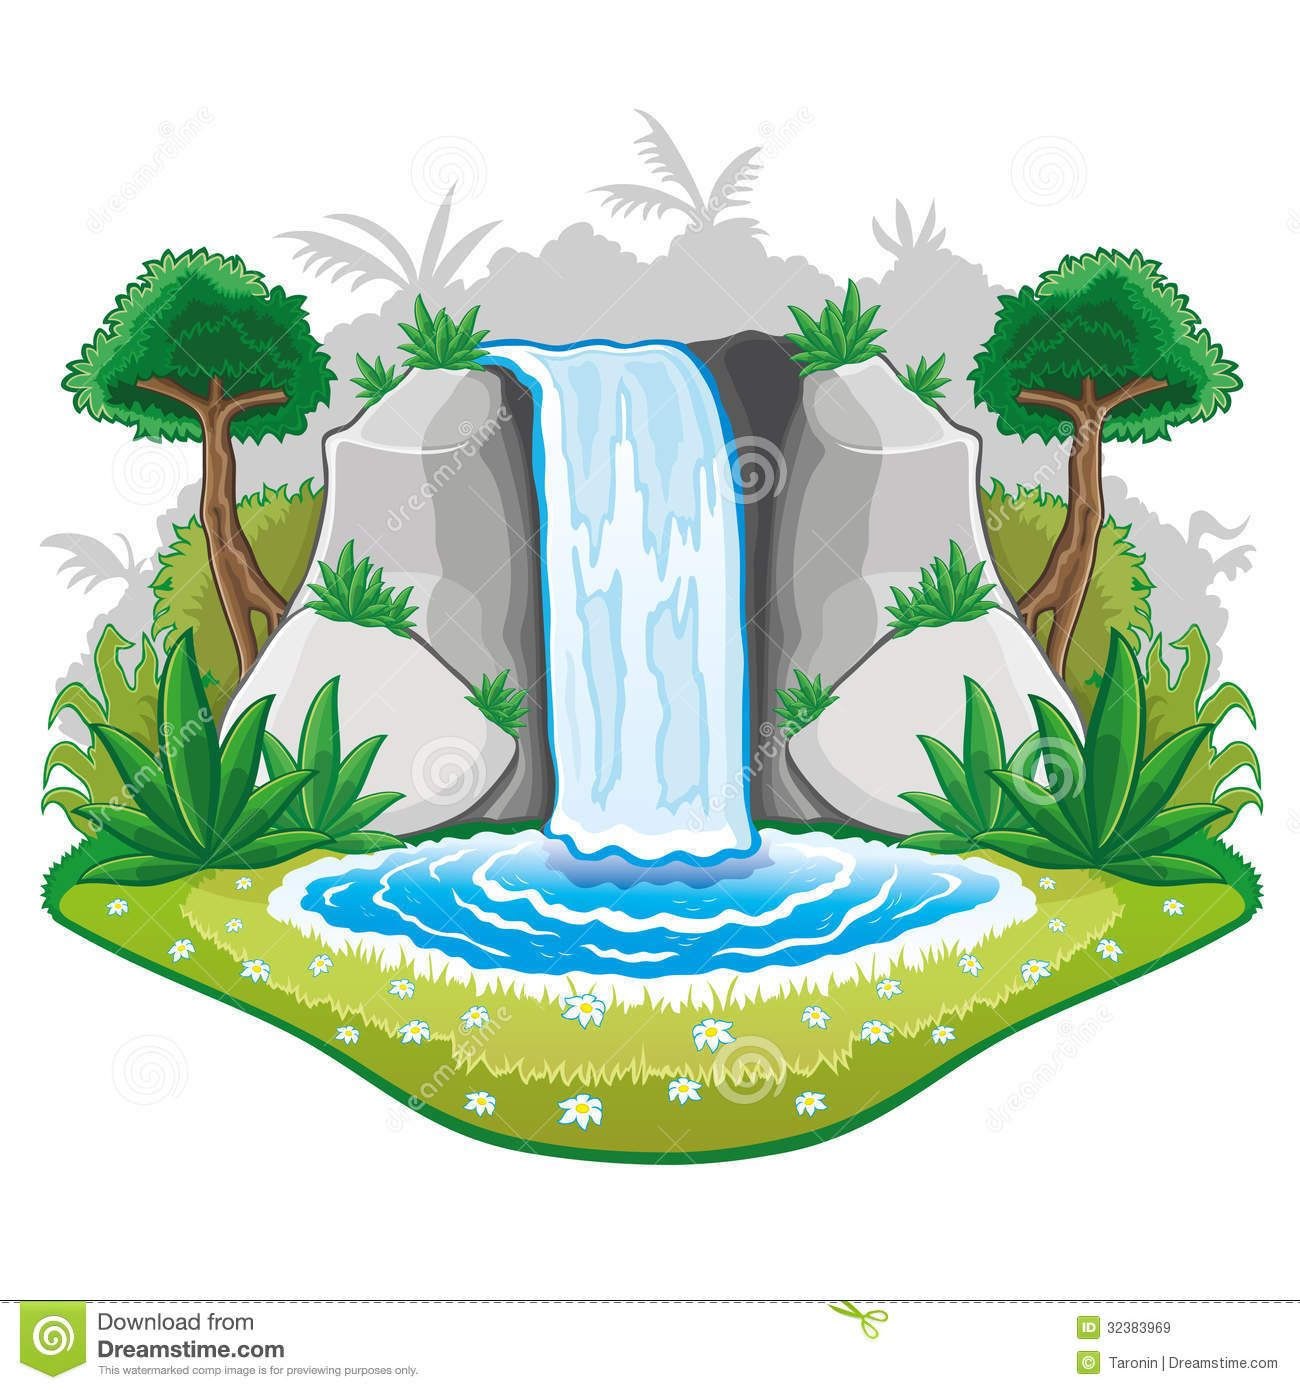 svg download Waterfall clipart. Pictures of waterfalls cartoon